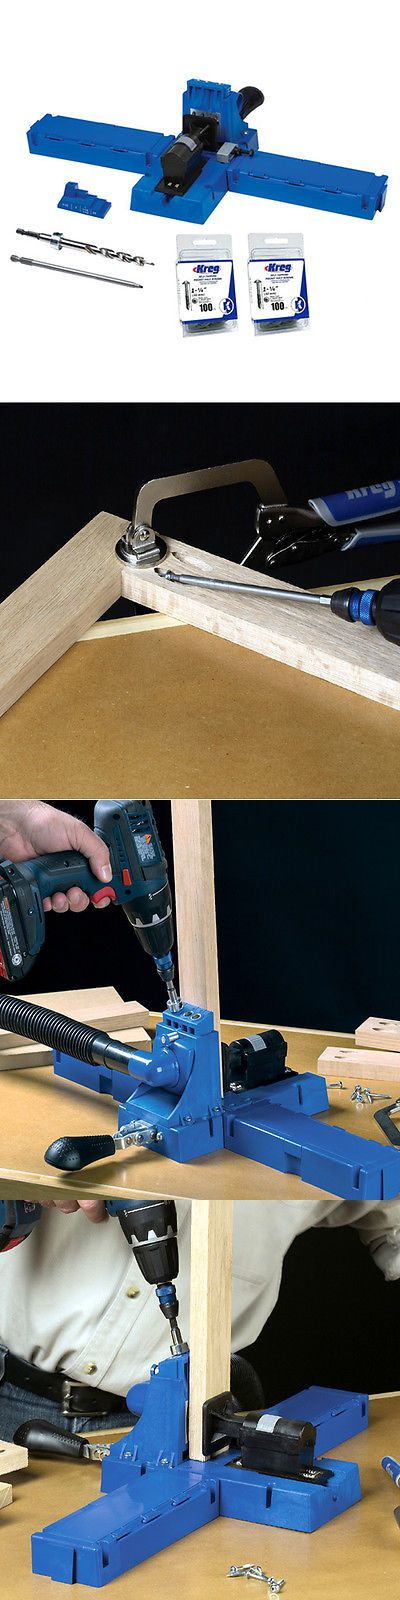 Joiners 20780: Kreg K5 Pocket Hole Jig System Woodworking Tool - New Upgraded K4 -> BUY IT NOW ONLY: $139 on eBay!